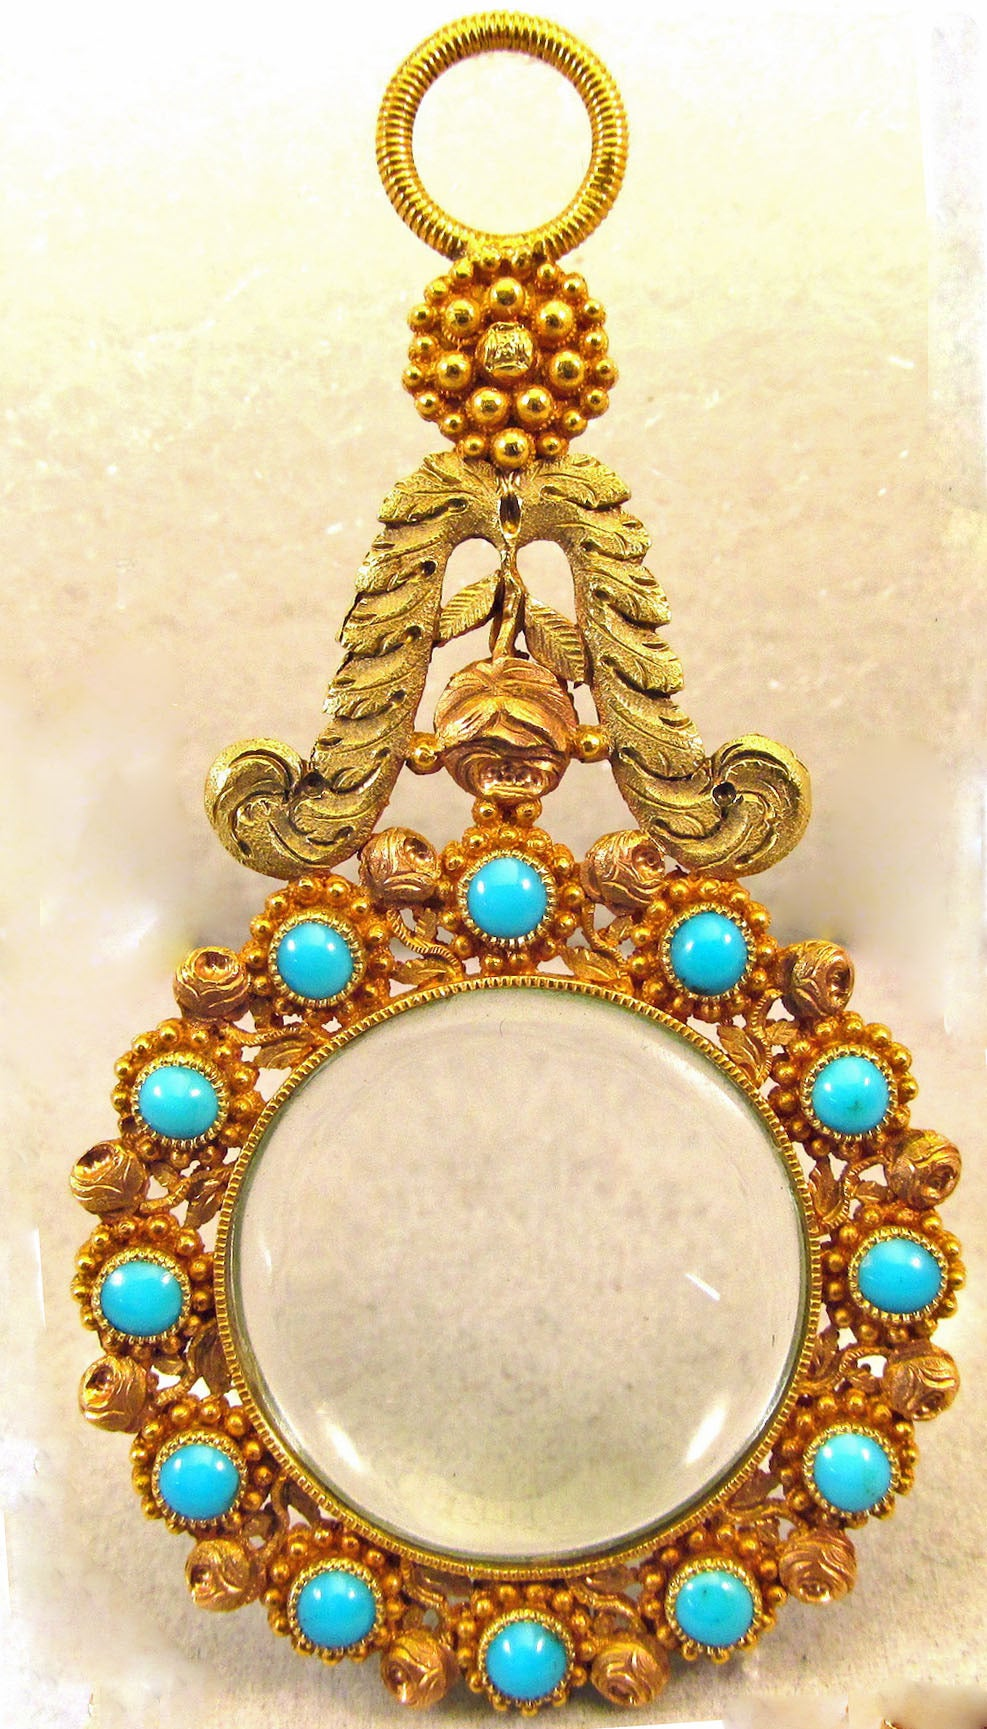 Unique Georgian quizzing glass or quizzer in three color 18K gold set with turquoise in a floral and leaf motif. The elaborate cannetille gold work is known for its intricate beads and coils and filigree. It became fashionable in England beginning